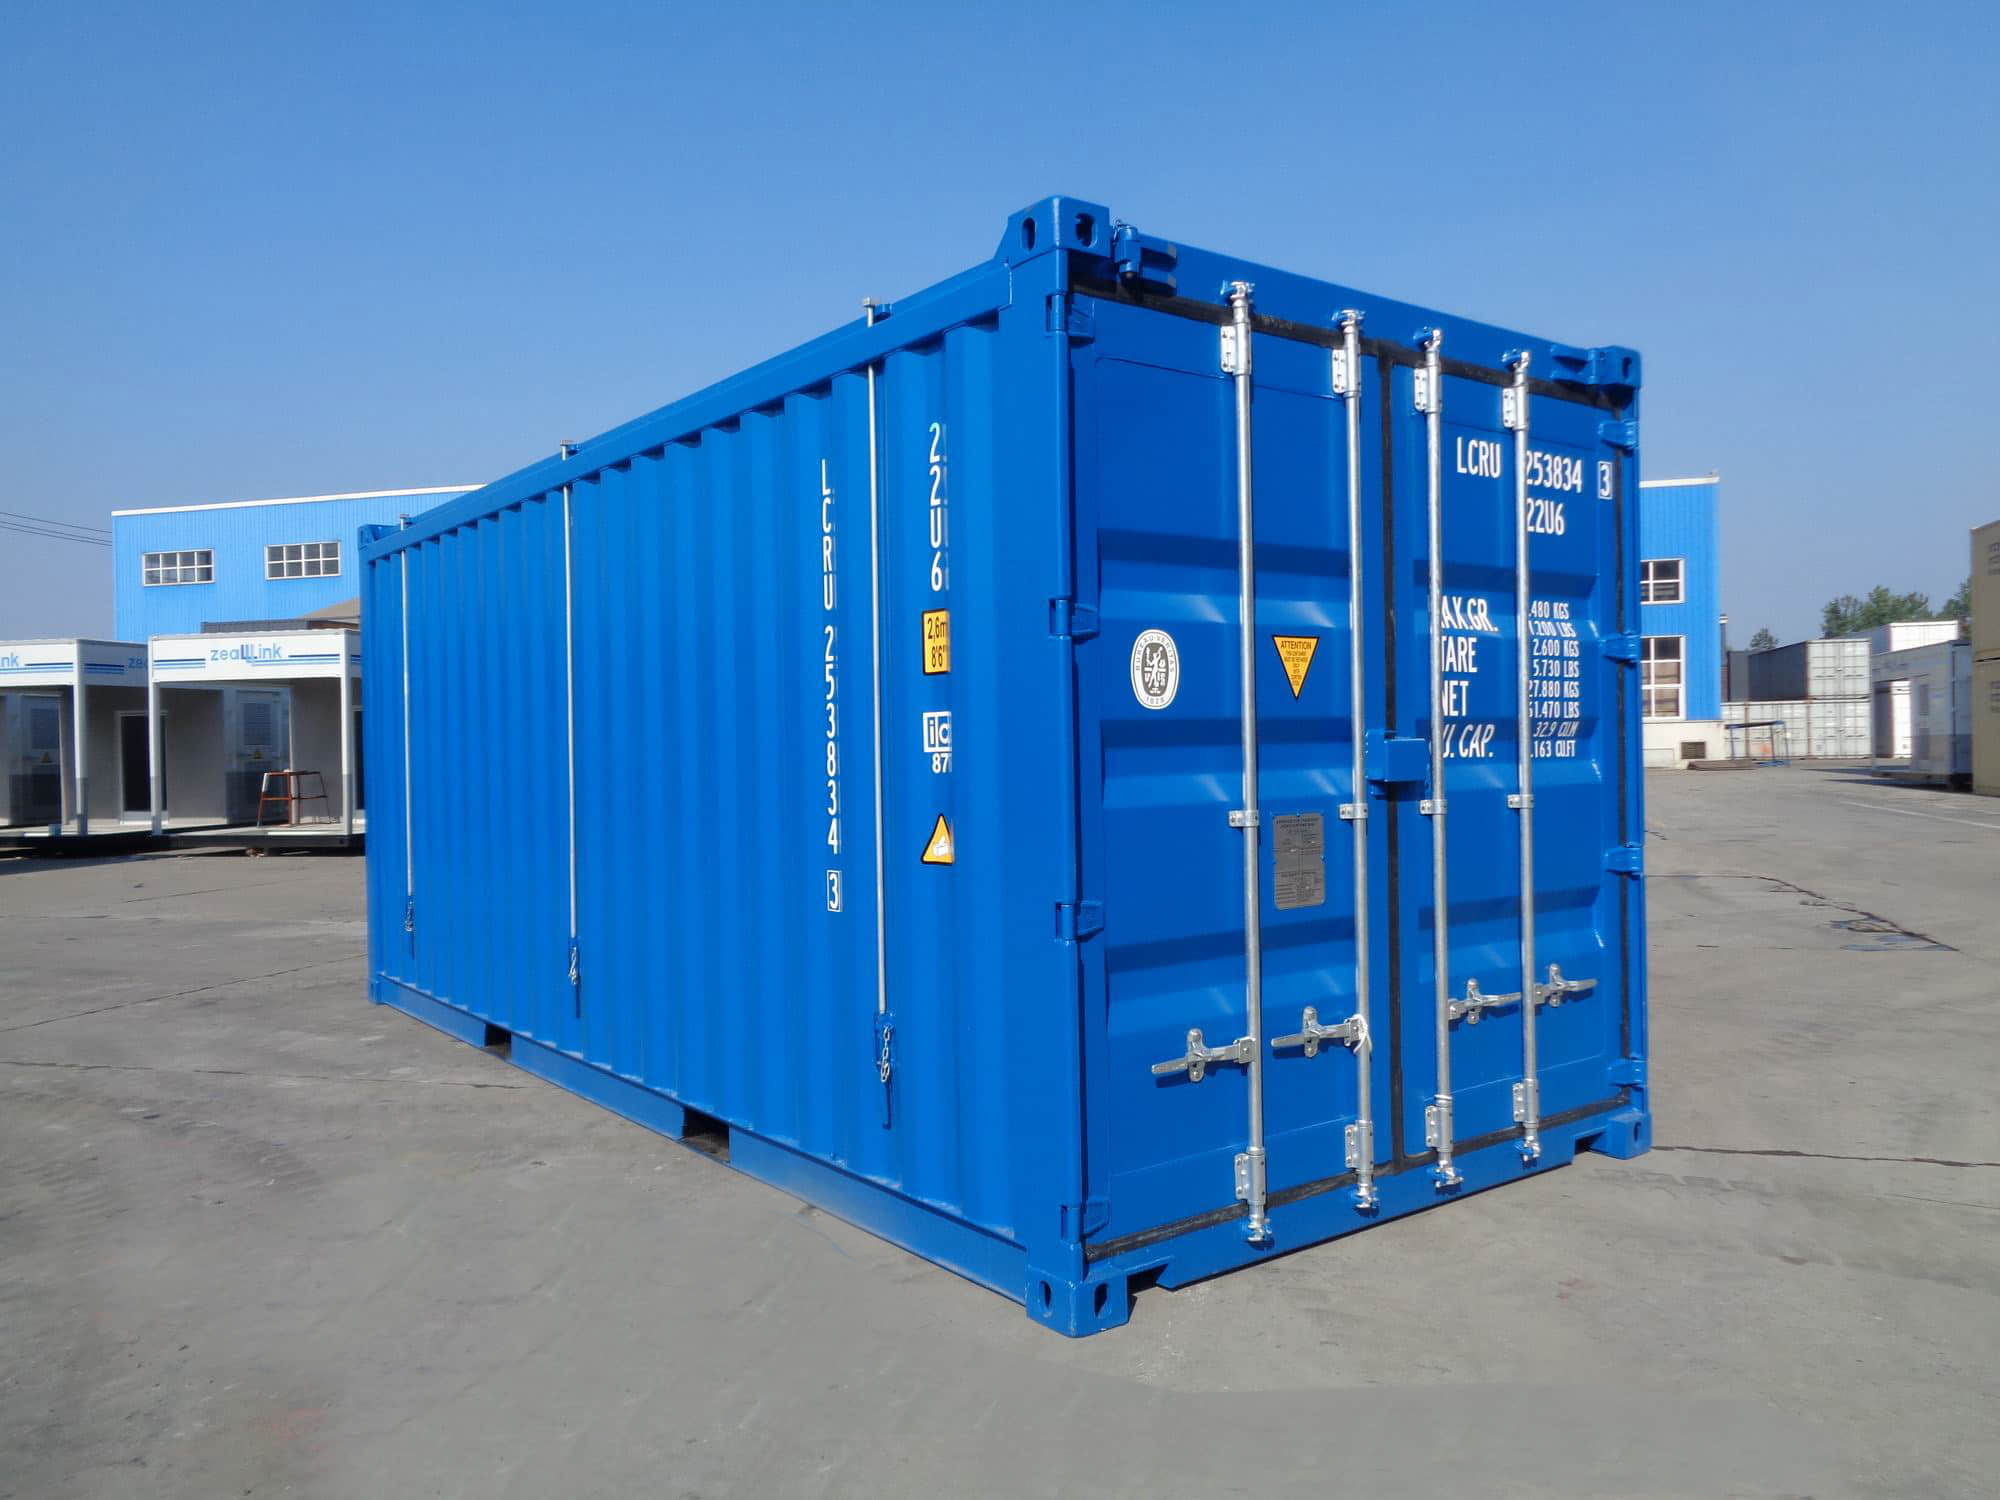 Design of IQF Refrigerated Cold Storage